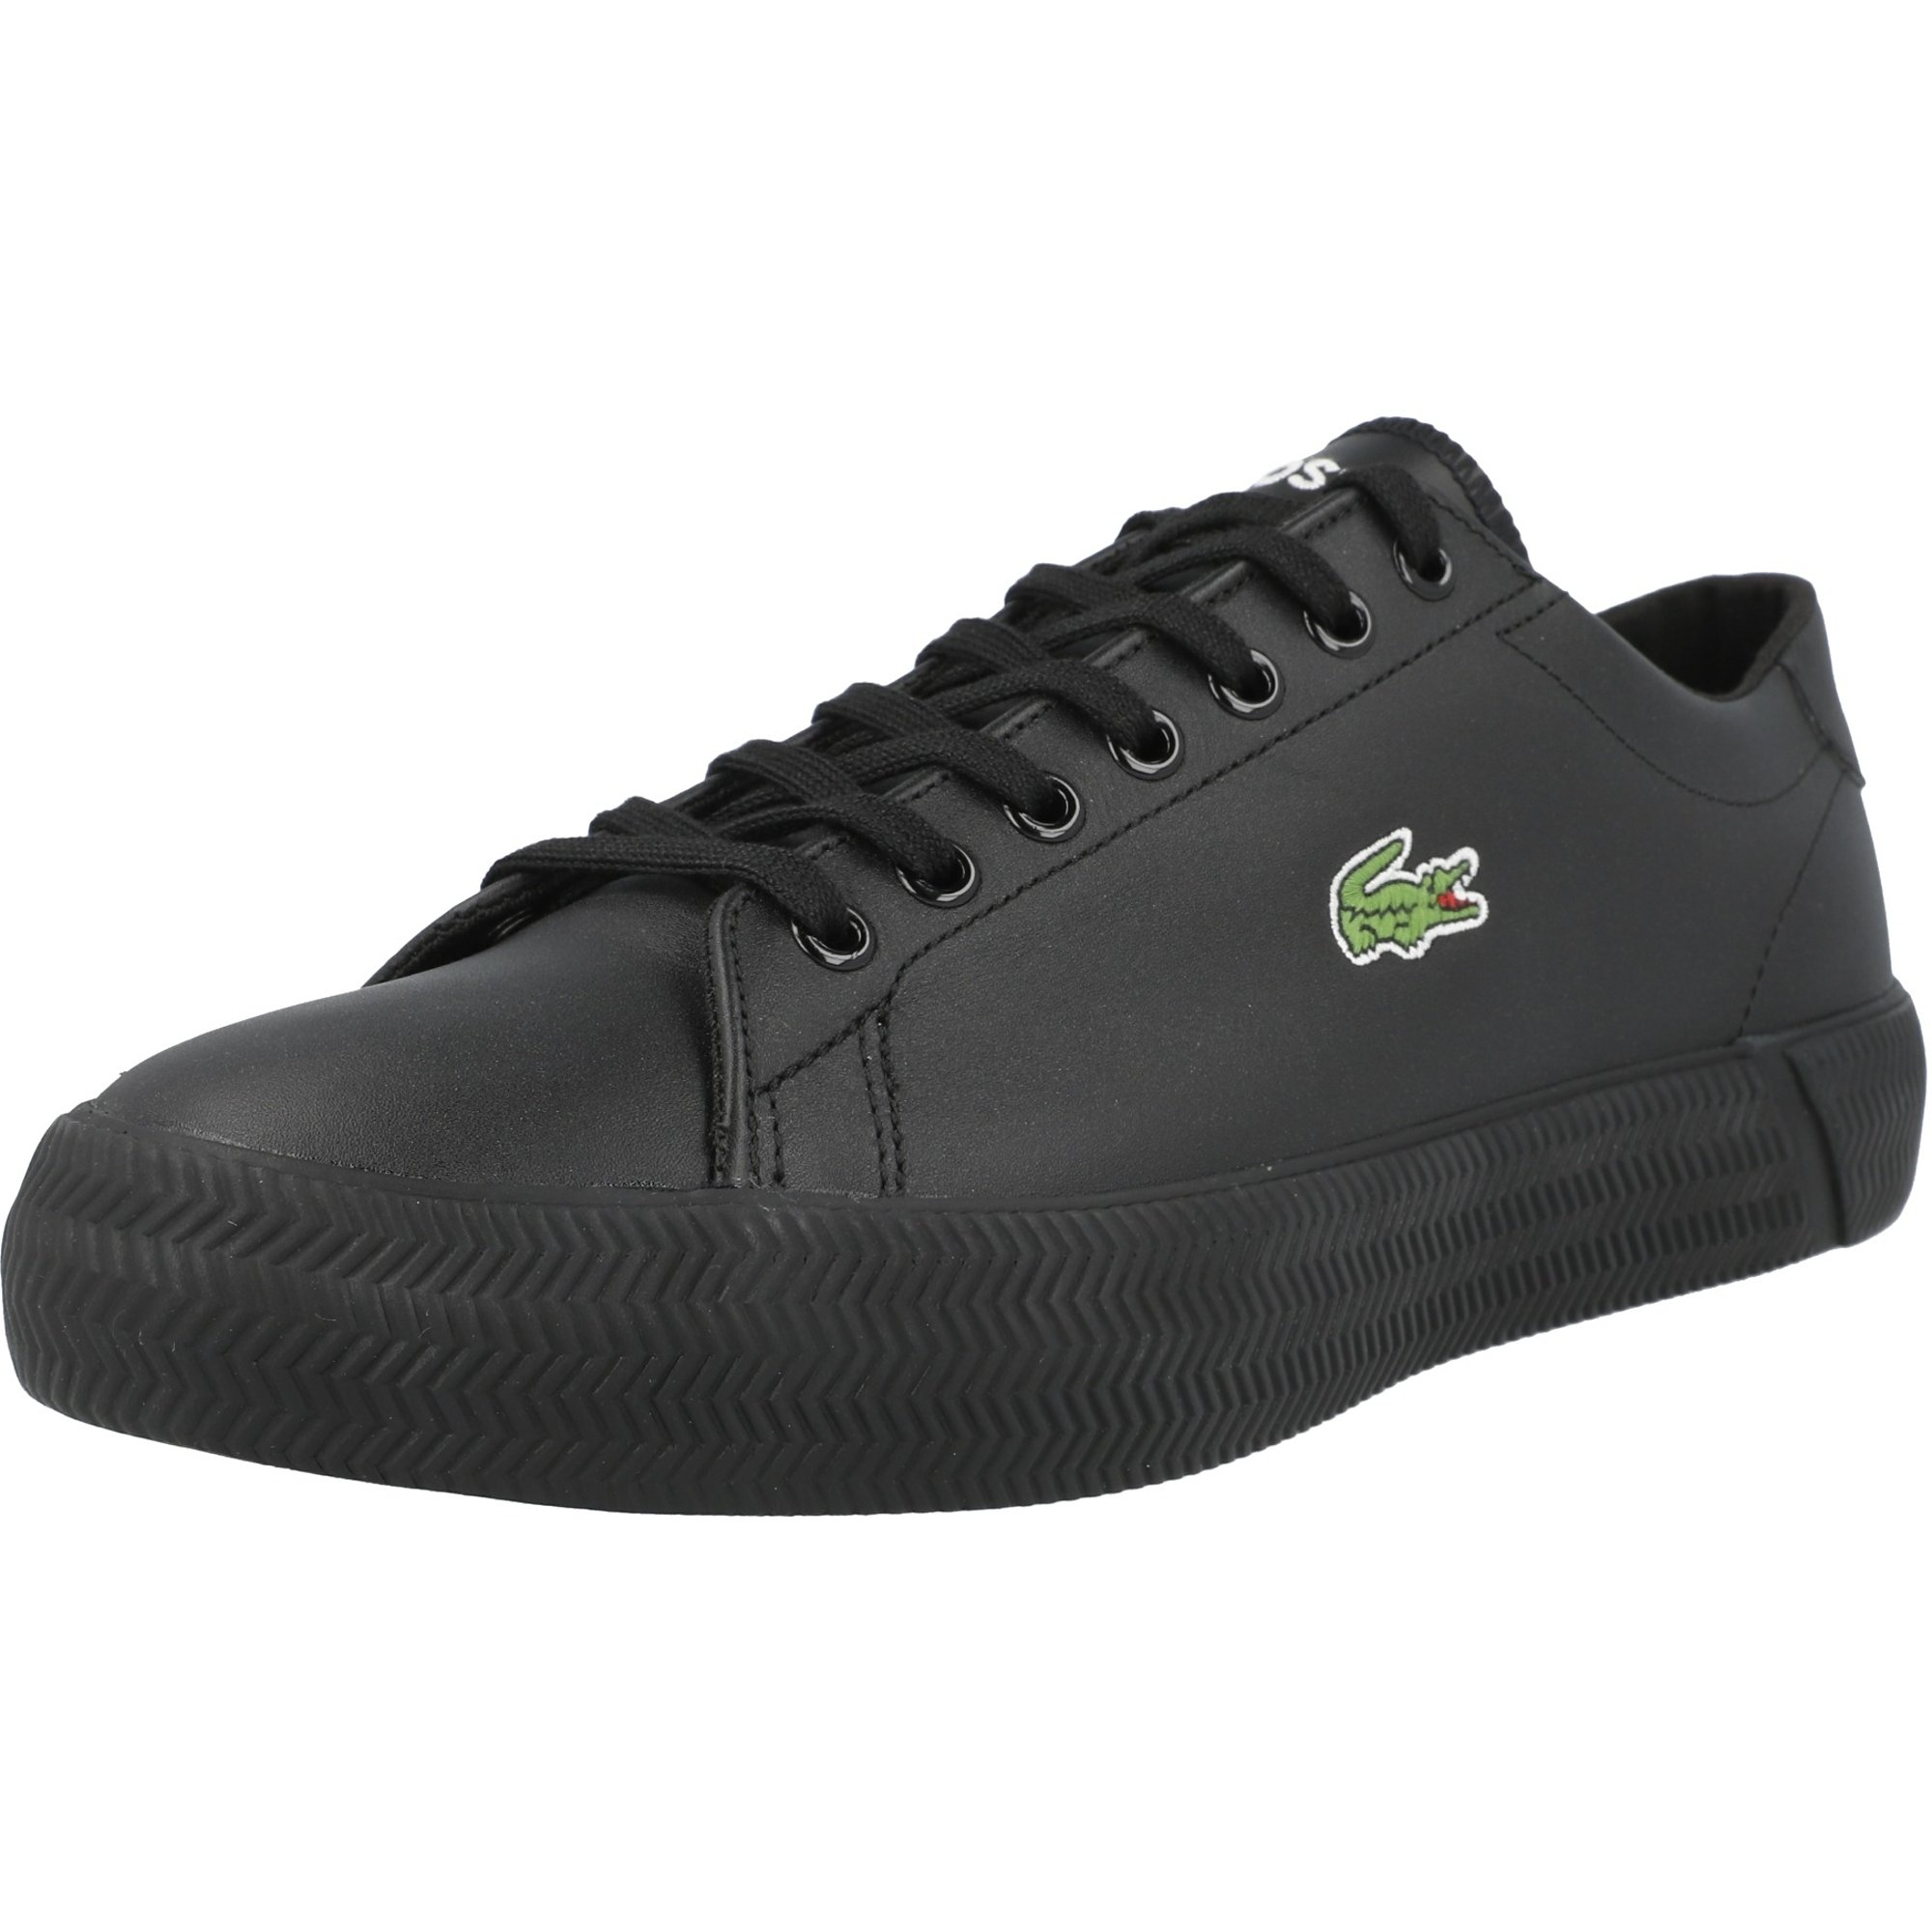 Lacoste Gripshot 0120 3 Black Leather